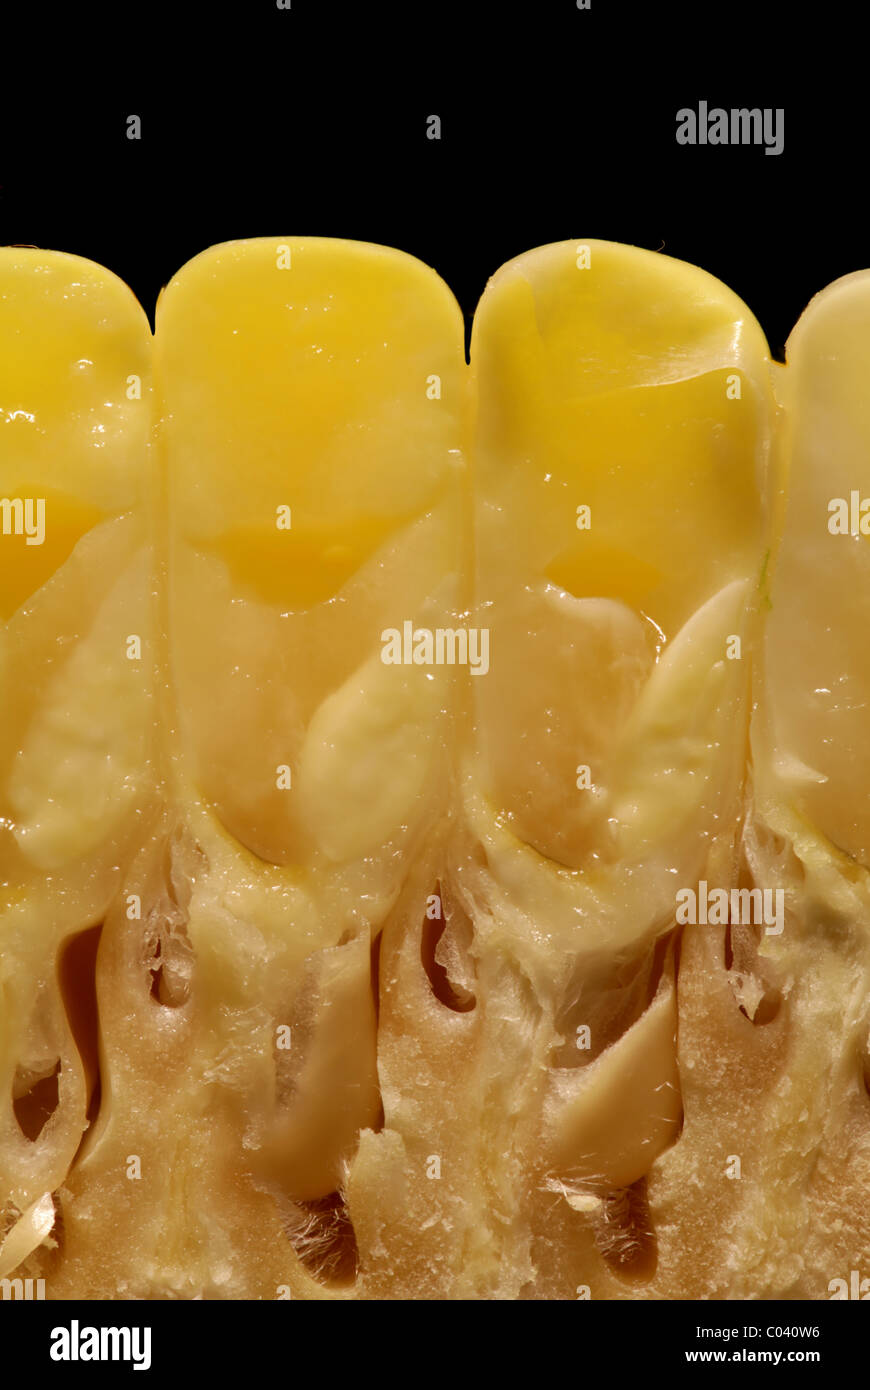 Corn kernels in cross section, showing embryos and endosperm. Stock Photo